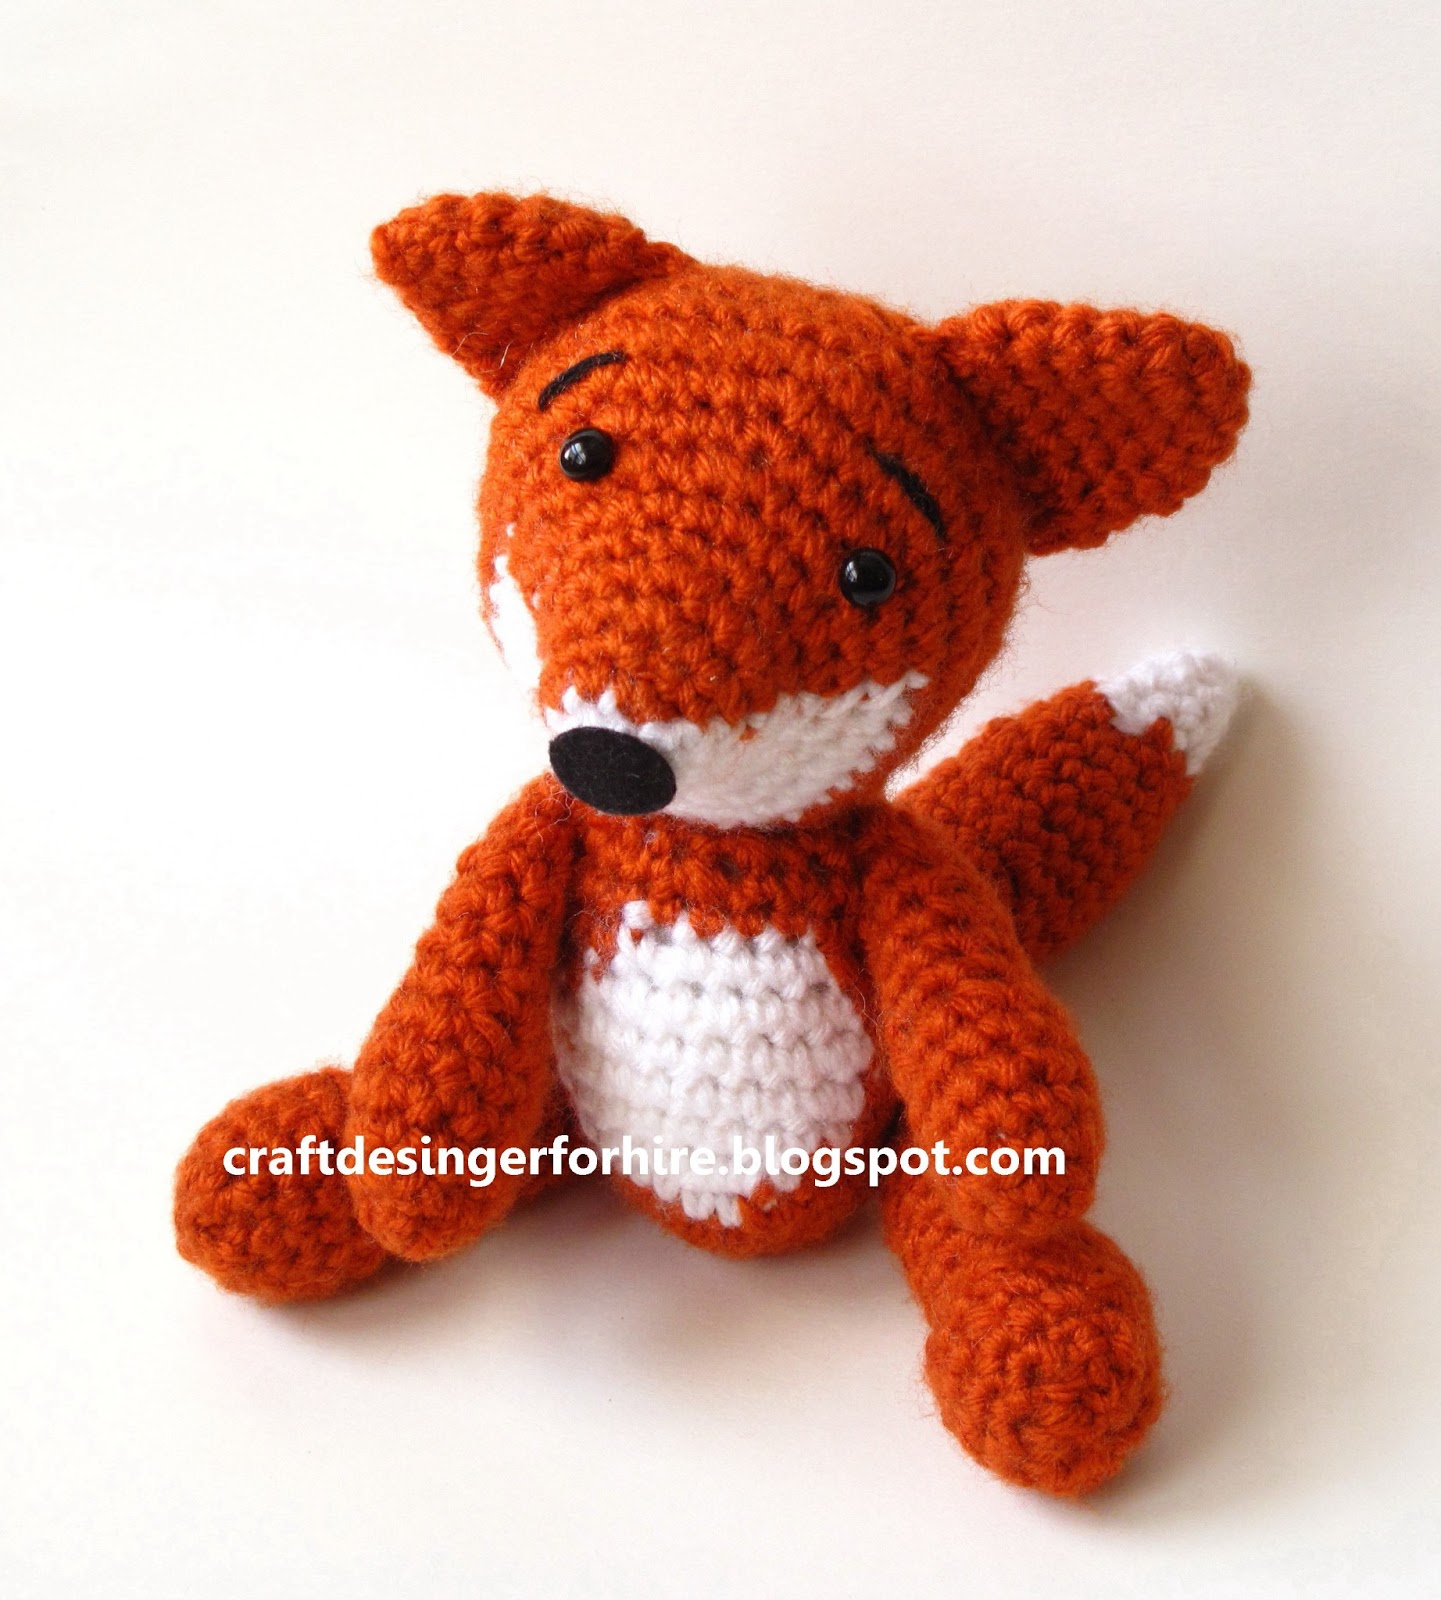 Amigurumi Strawberry Girl Free Pattern : Craft Designer for Hire: Free Fox Amigurumi Pattern from ...